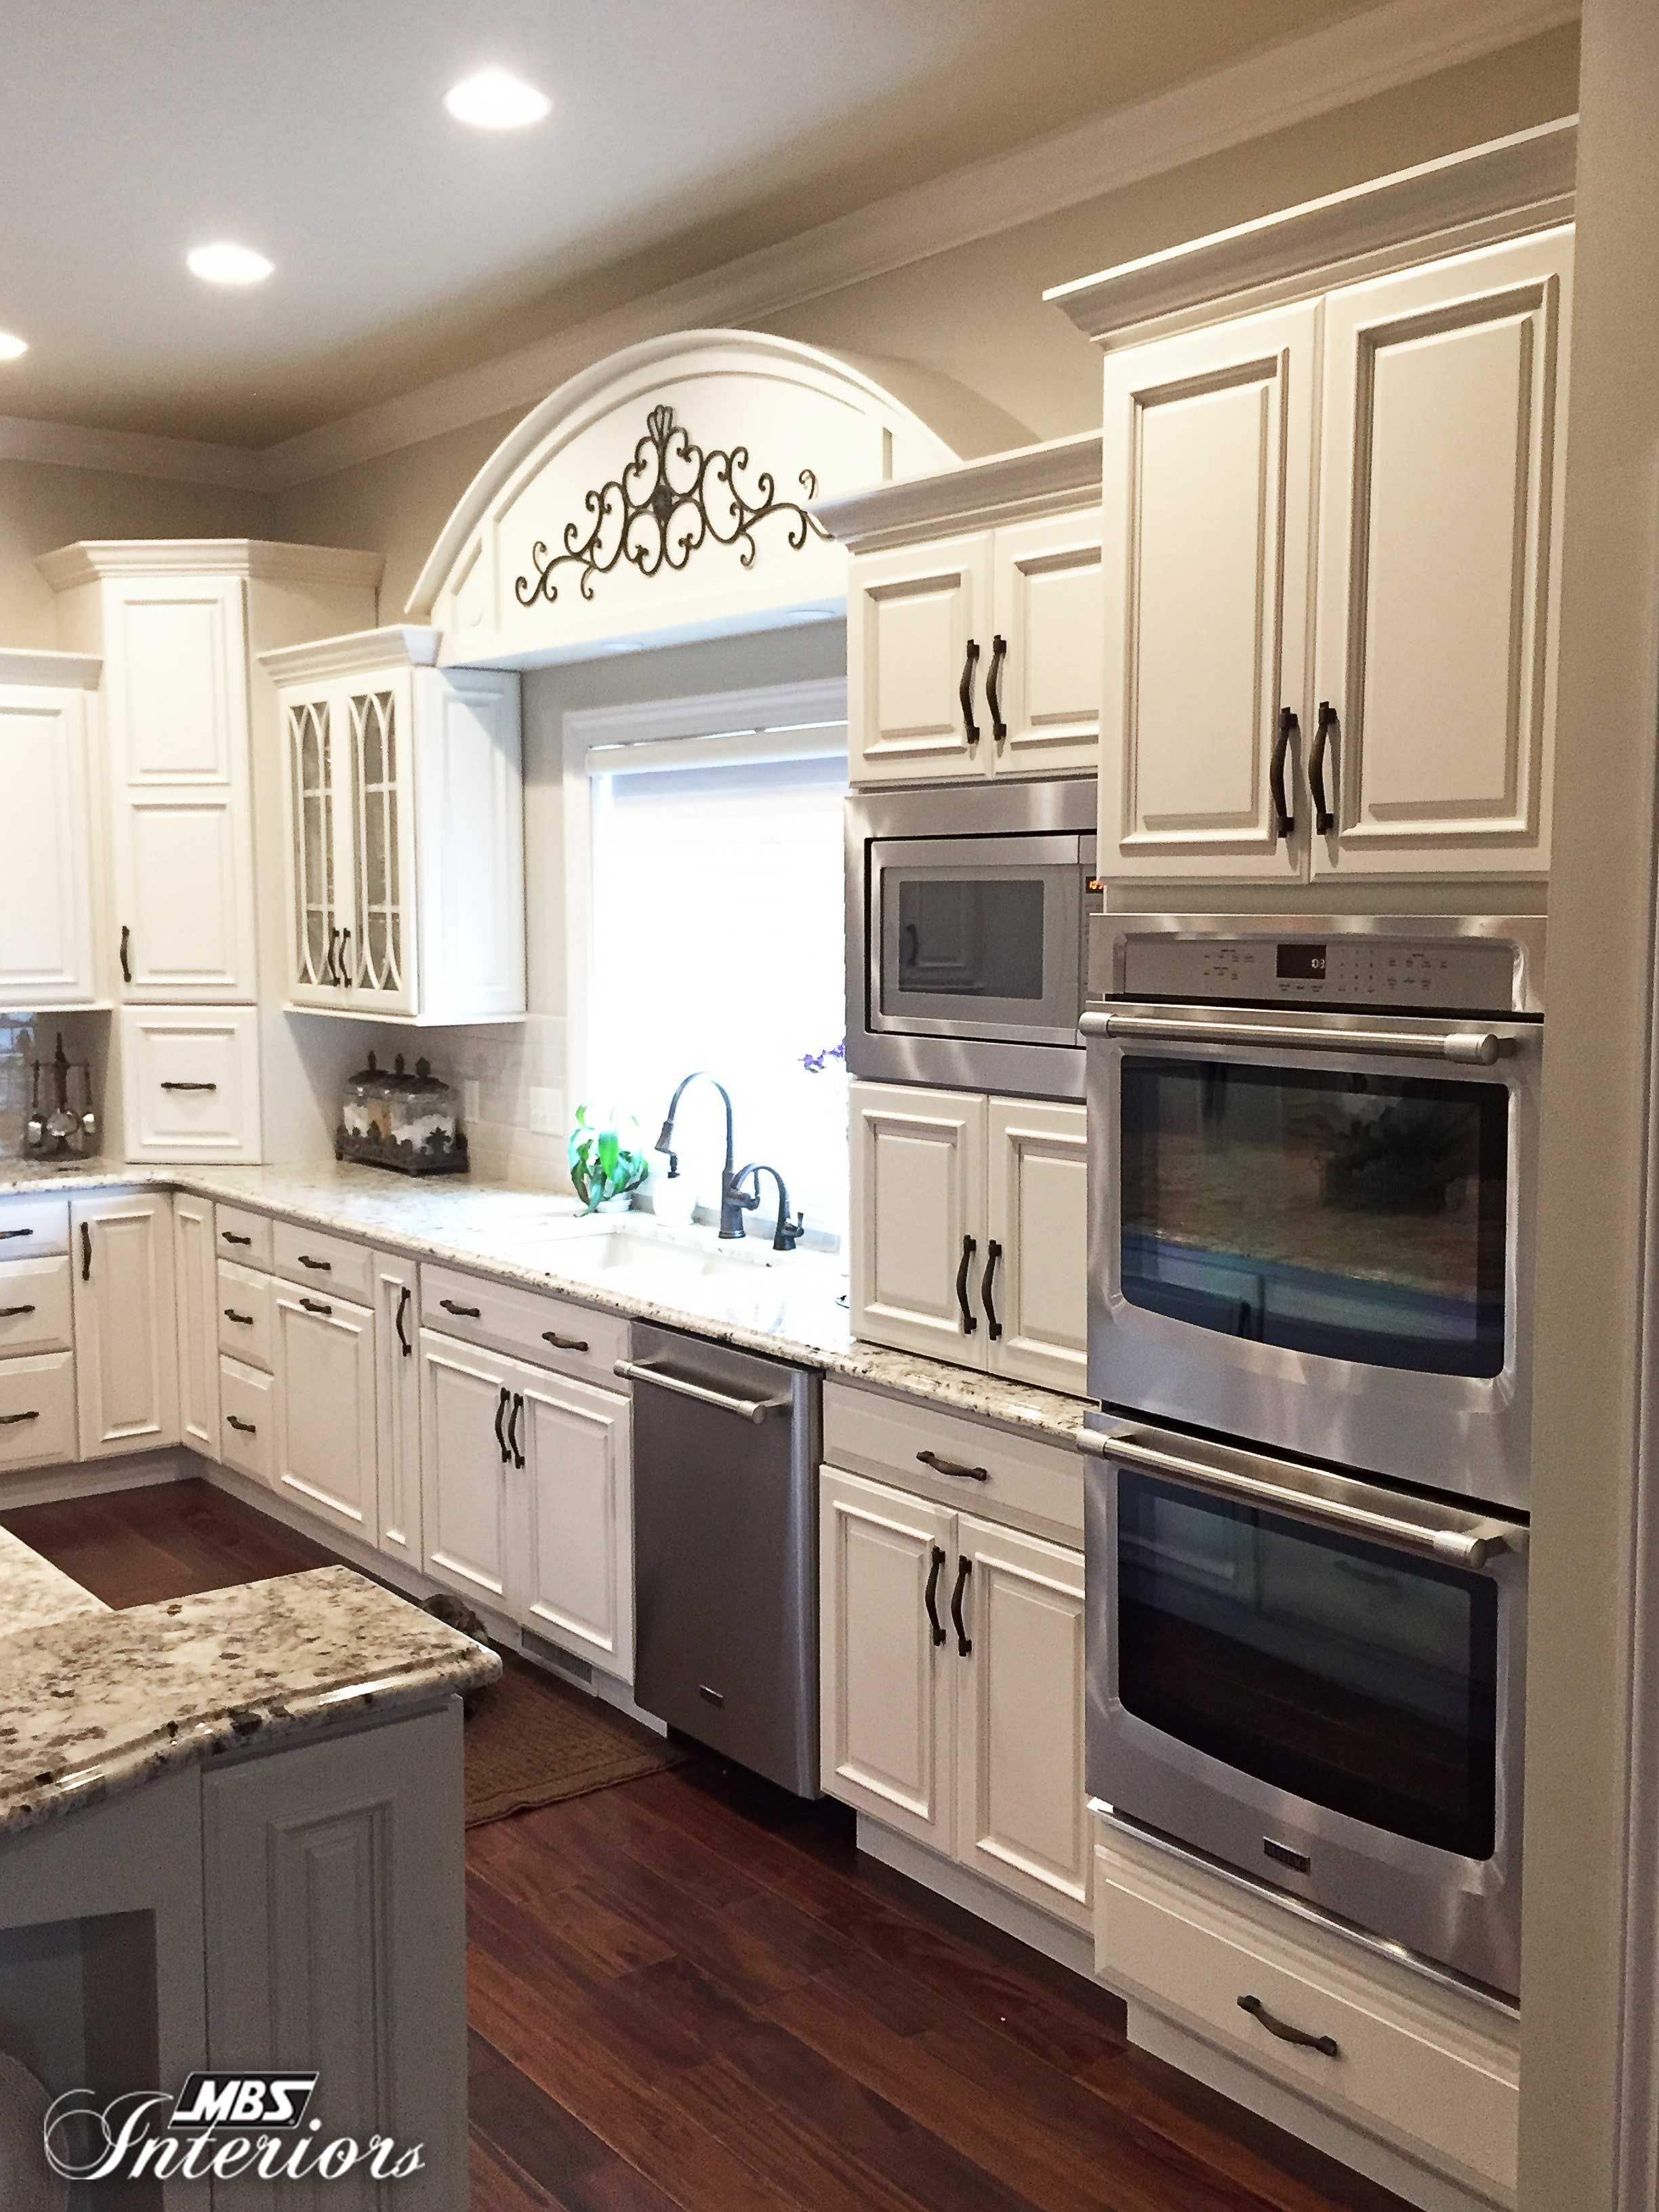 French Colonial Kitchen Kitchen Design House Interior Design Kitchen Interior Design Kitchen